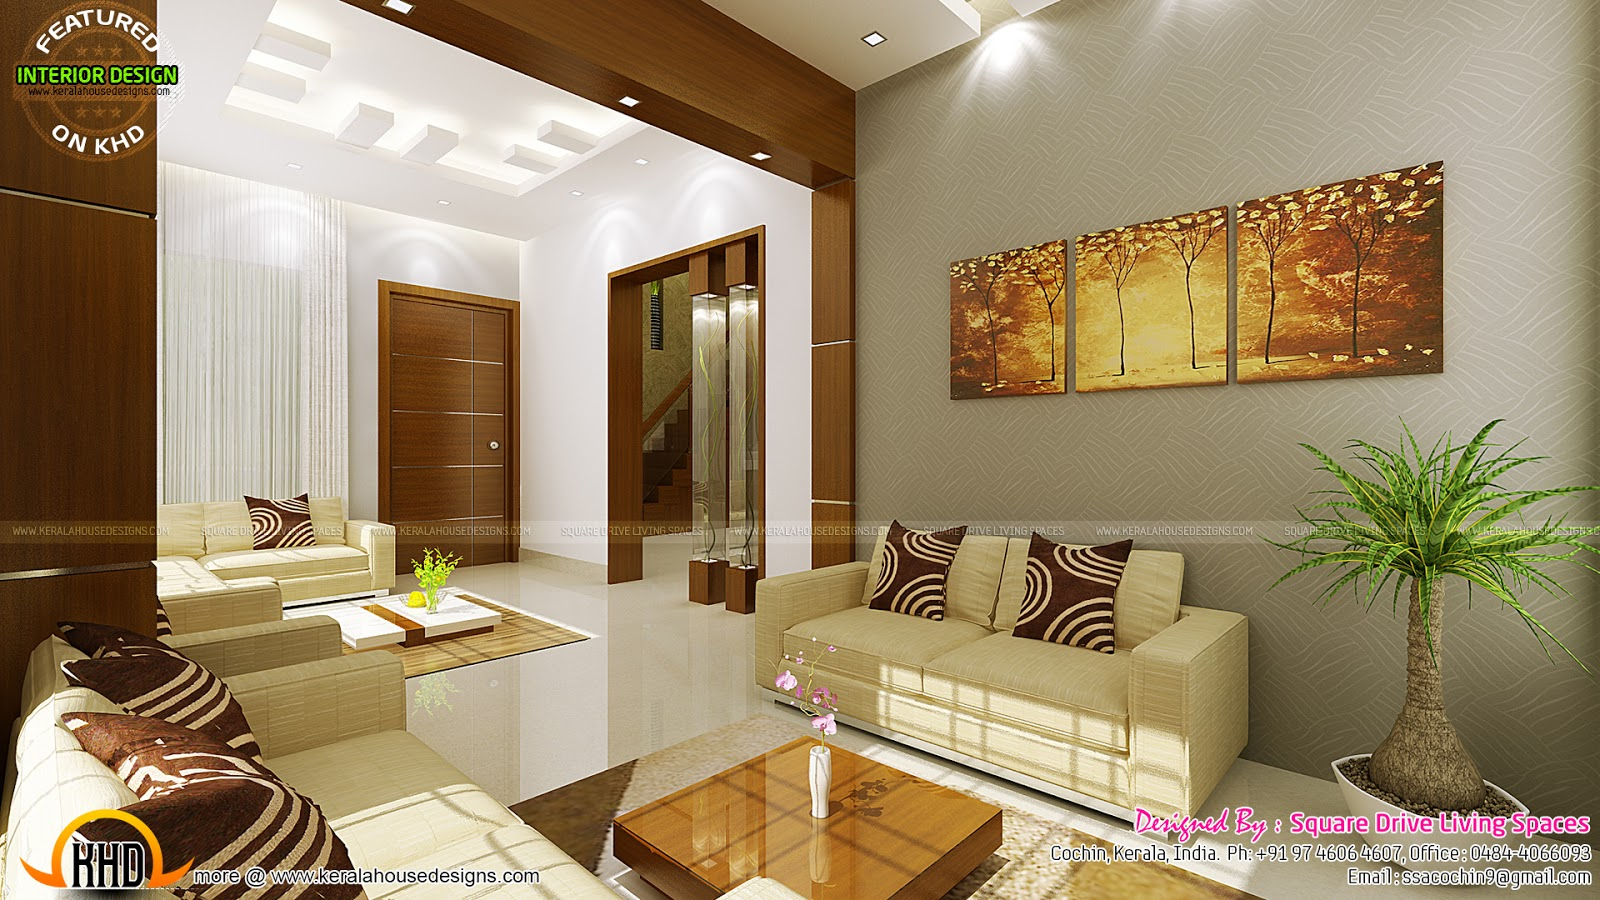 Contemporary kitchen dining and living room kerala home for Interior design for duplex living room